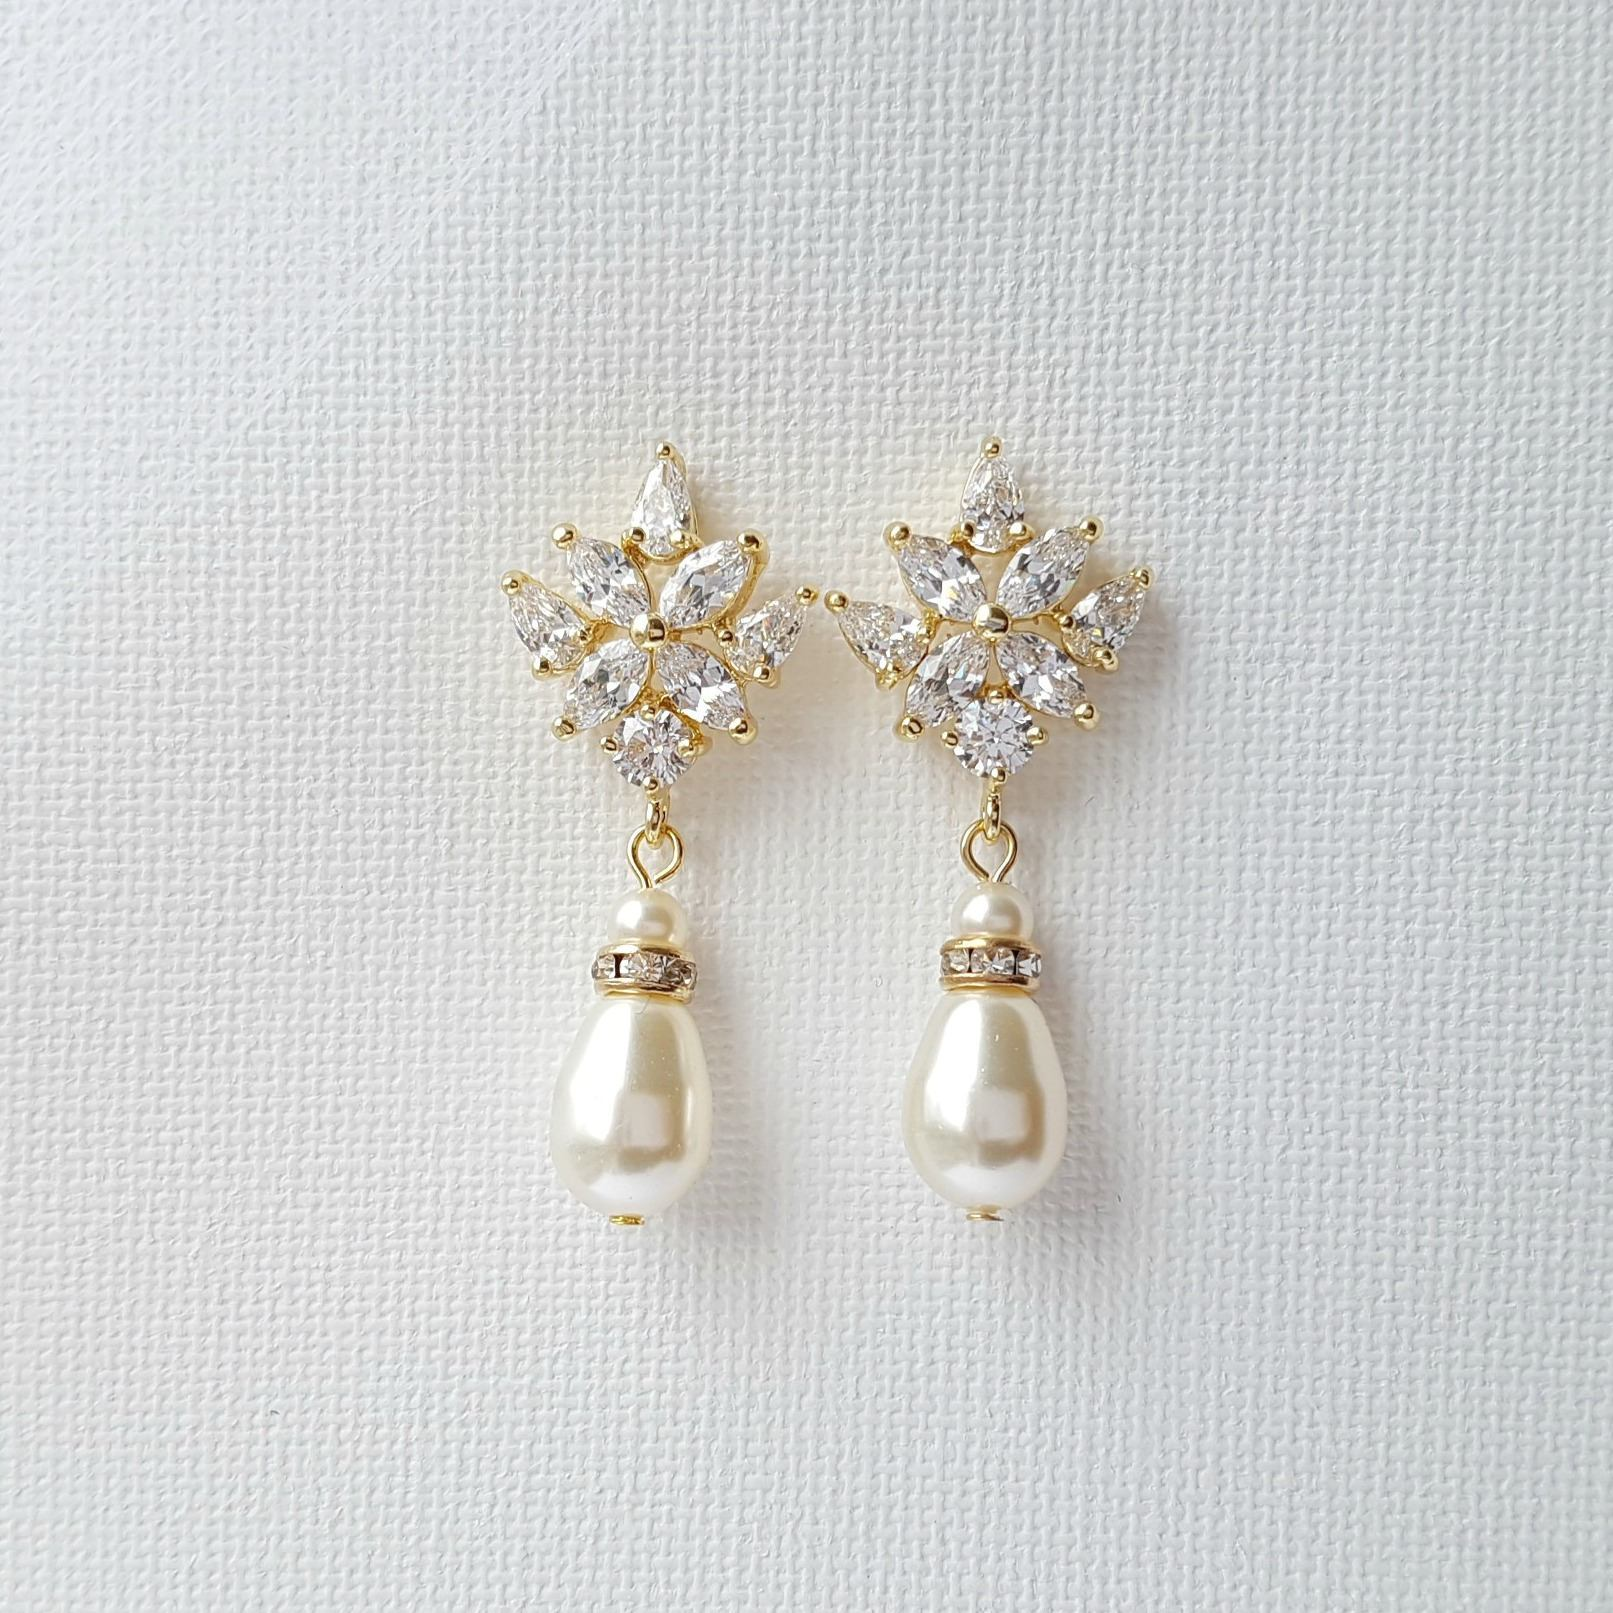 Gold Bridal Earrings, Gold Wedding Earrings, Pearl Drop Earrings, Swarovski Pearls, Gold Wedding Jewelry, Rosa